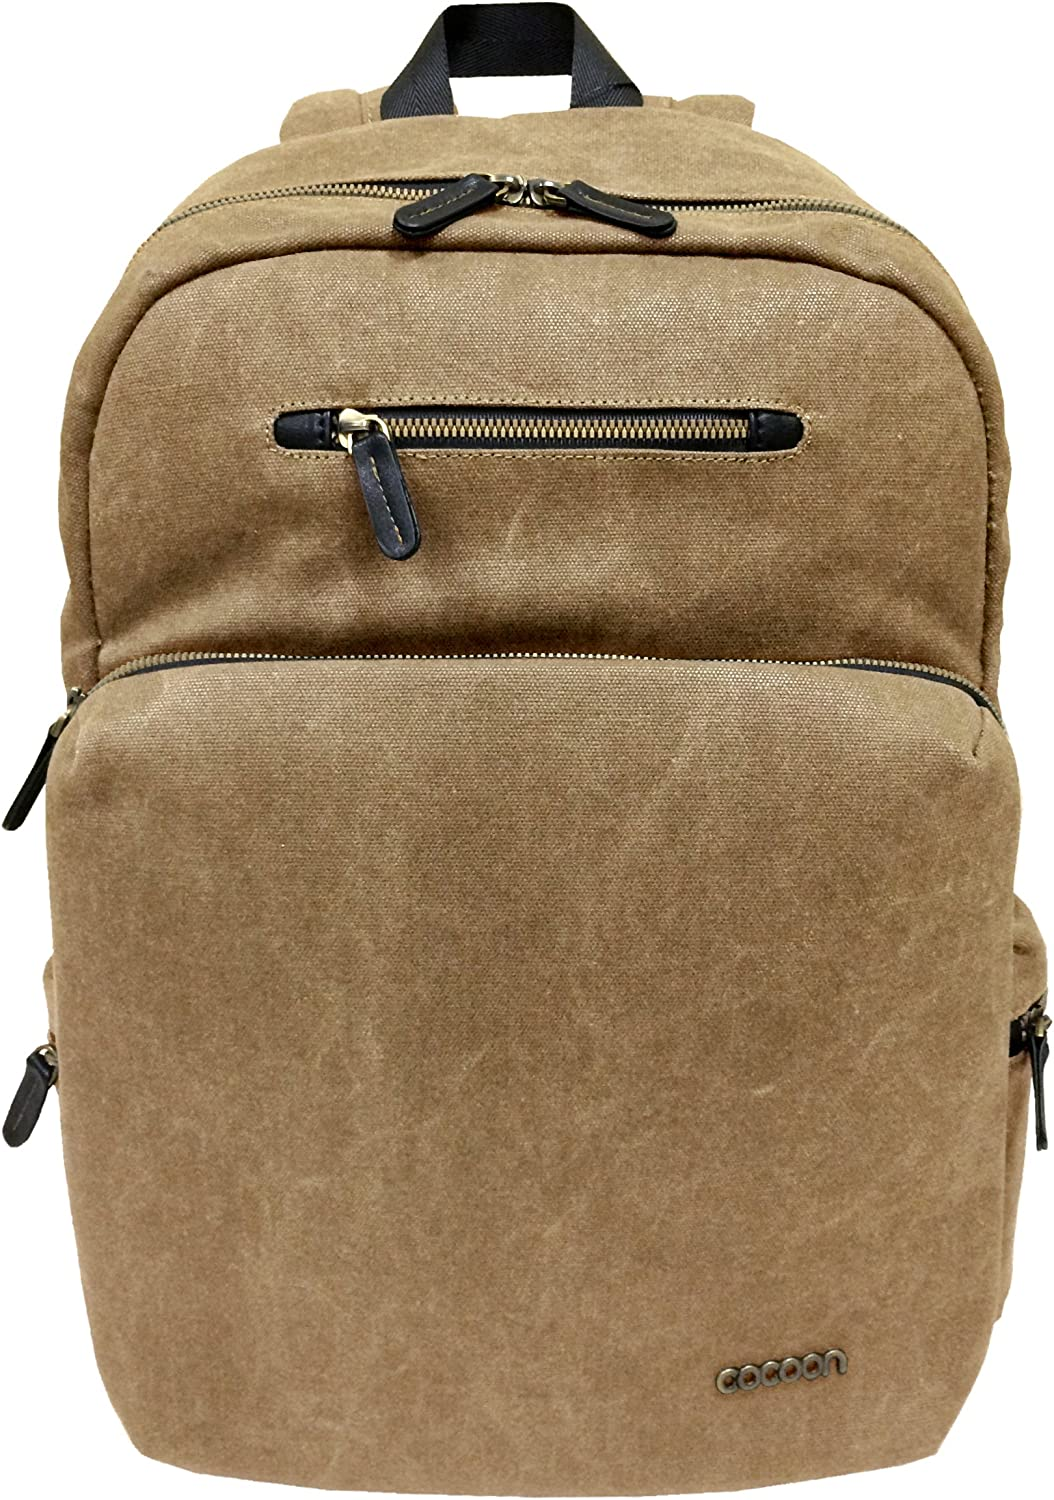 Cocoon MCP3404AG Urban Adventure 16 Backpack with Built-in GRID-IT Accessory Organizer Army Green